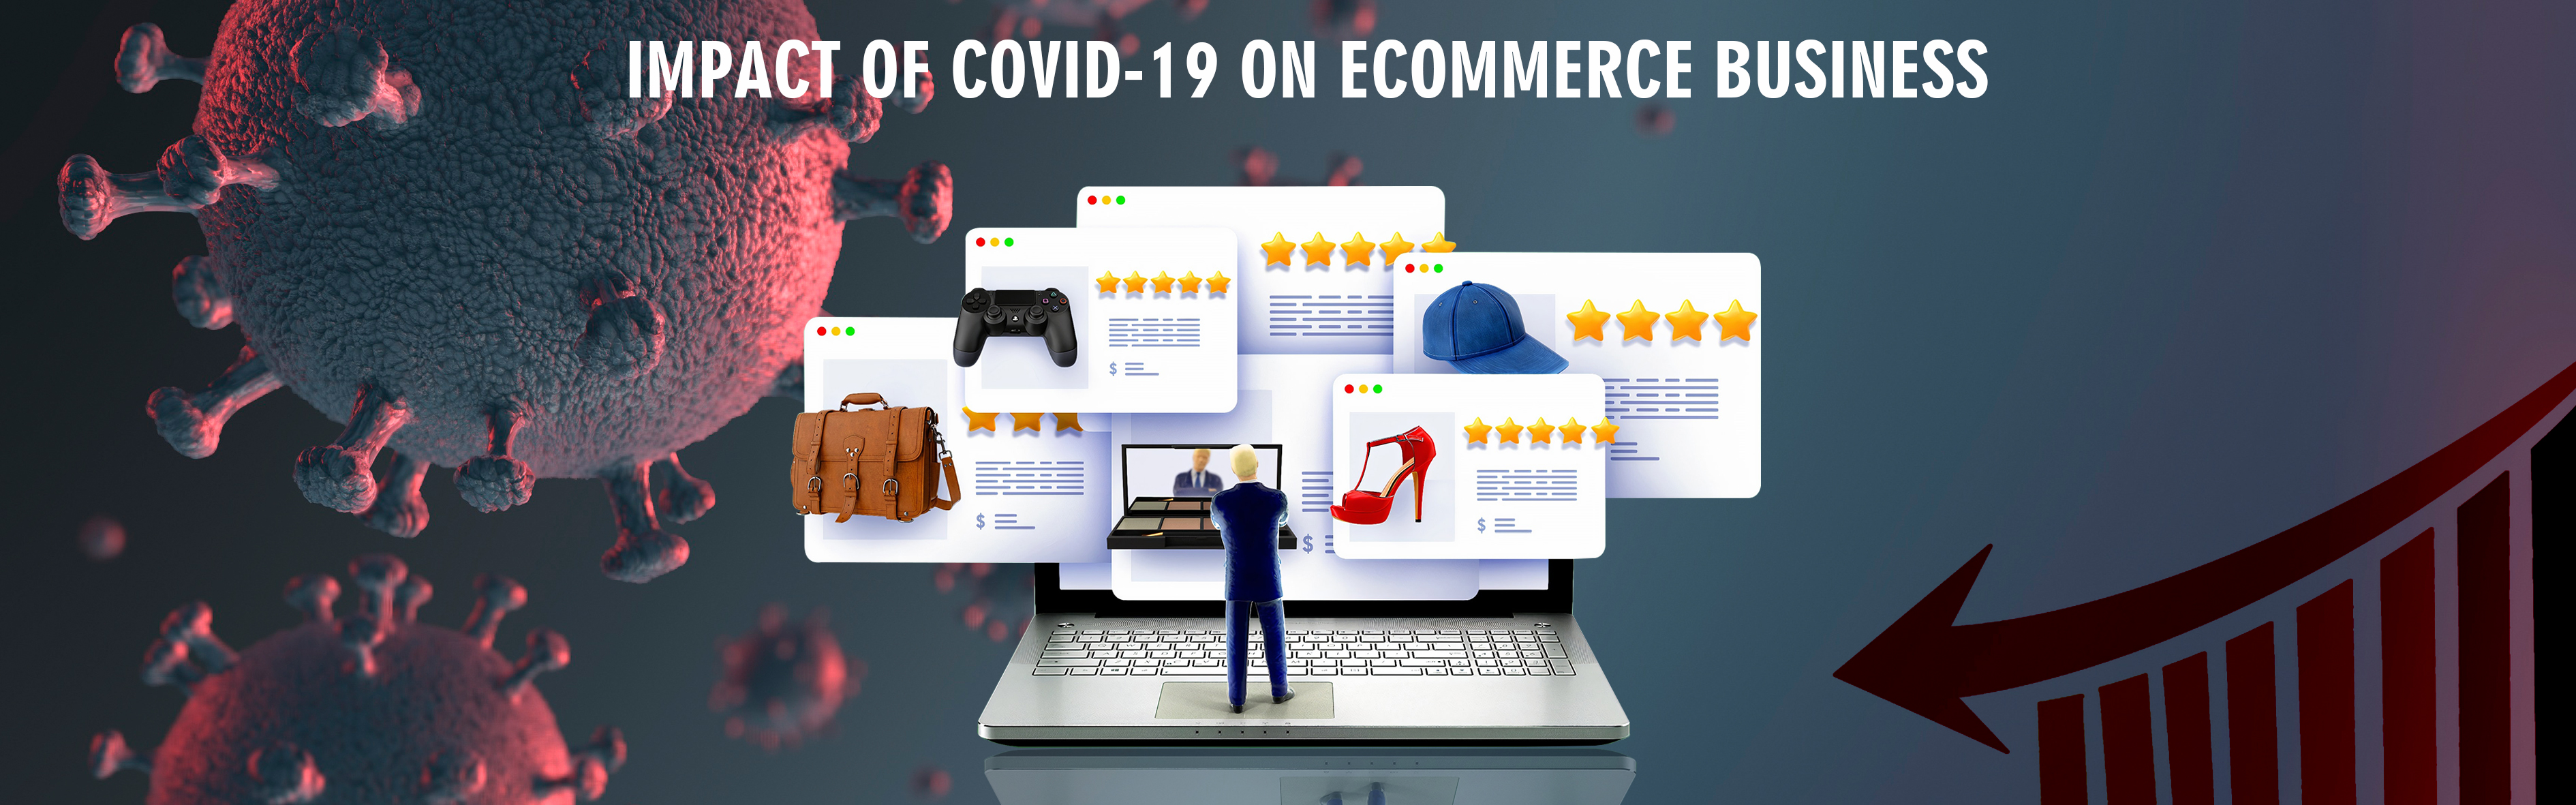 Impact of COVID-19 on E-Commerce Business